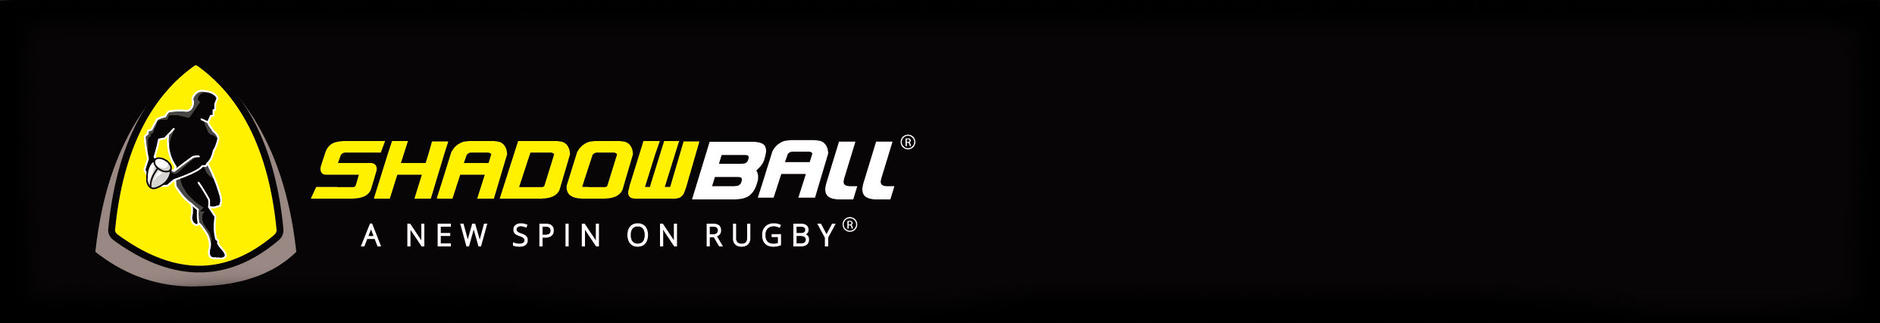 Shadowball / シャドーボール RUGBY